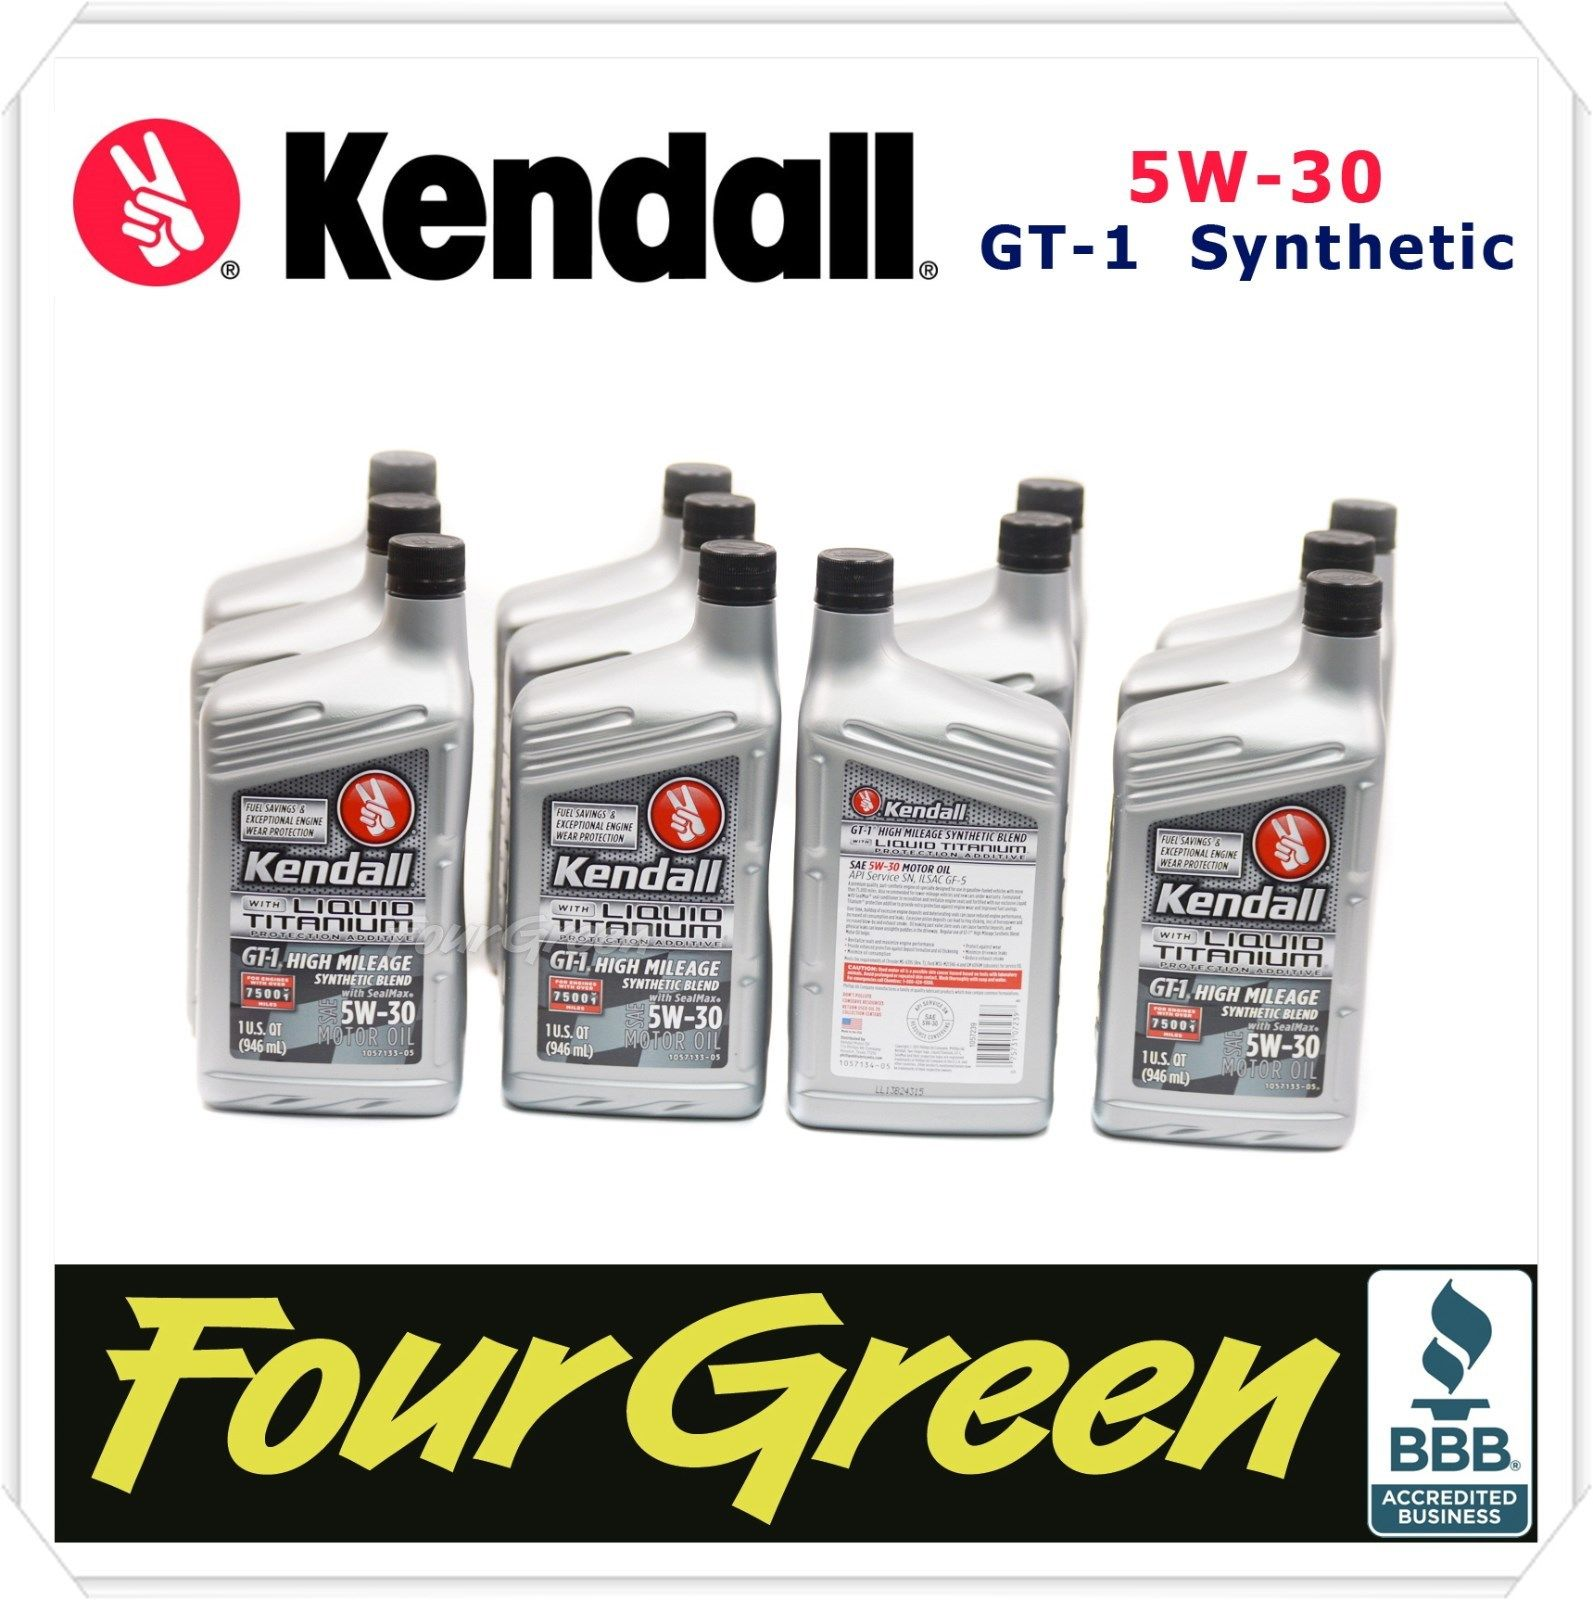 Kendall Engine Motor Oil 5w30 GT-1 Synthetic Blend High Mileage 12QRTS